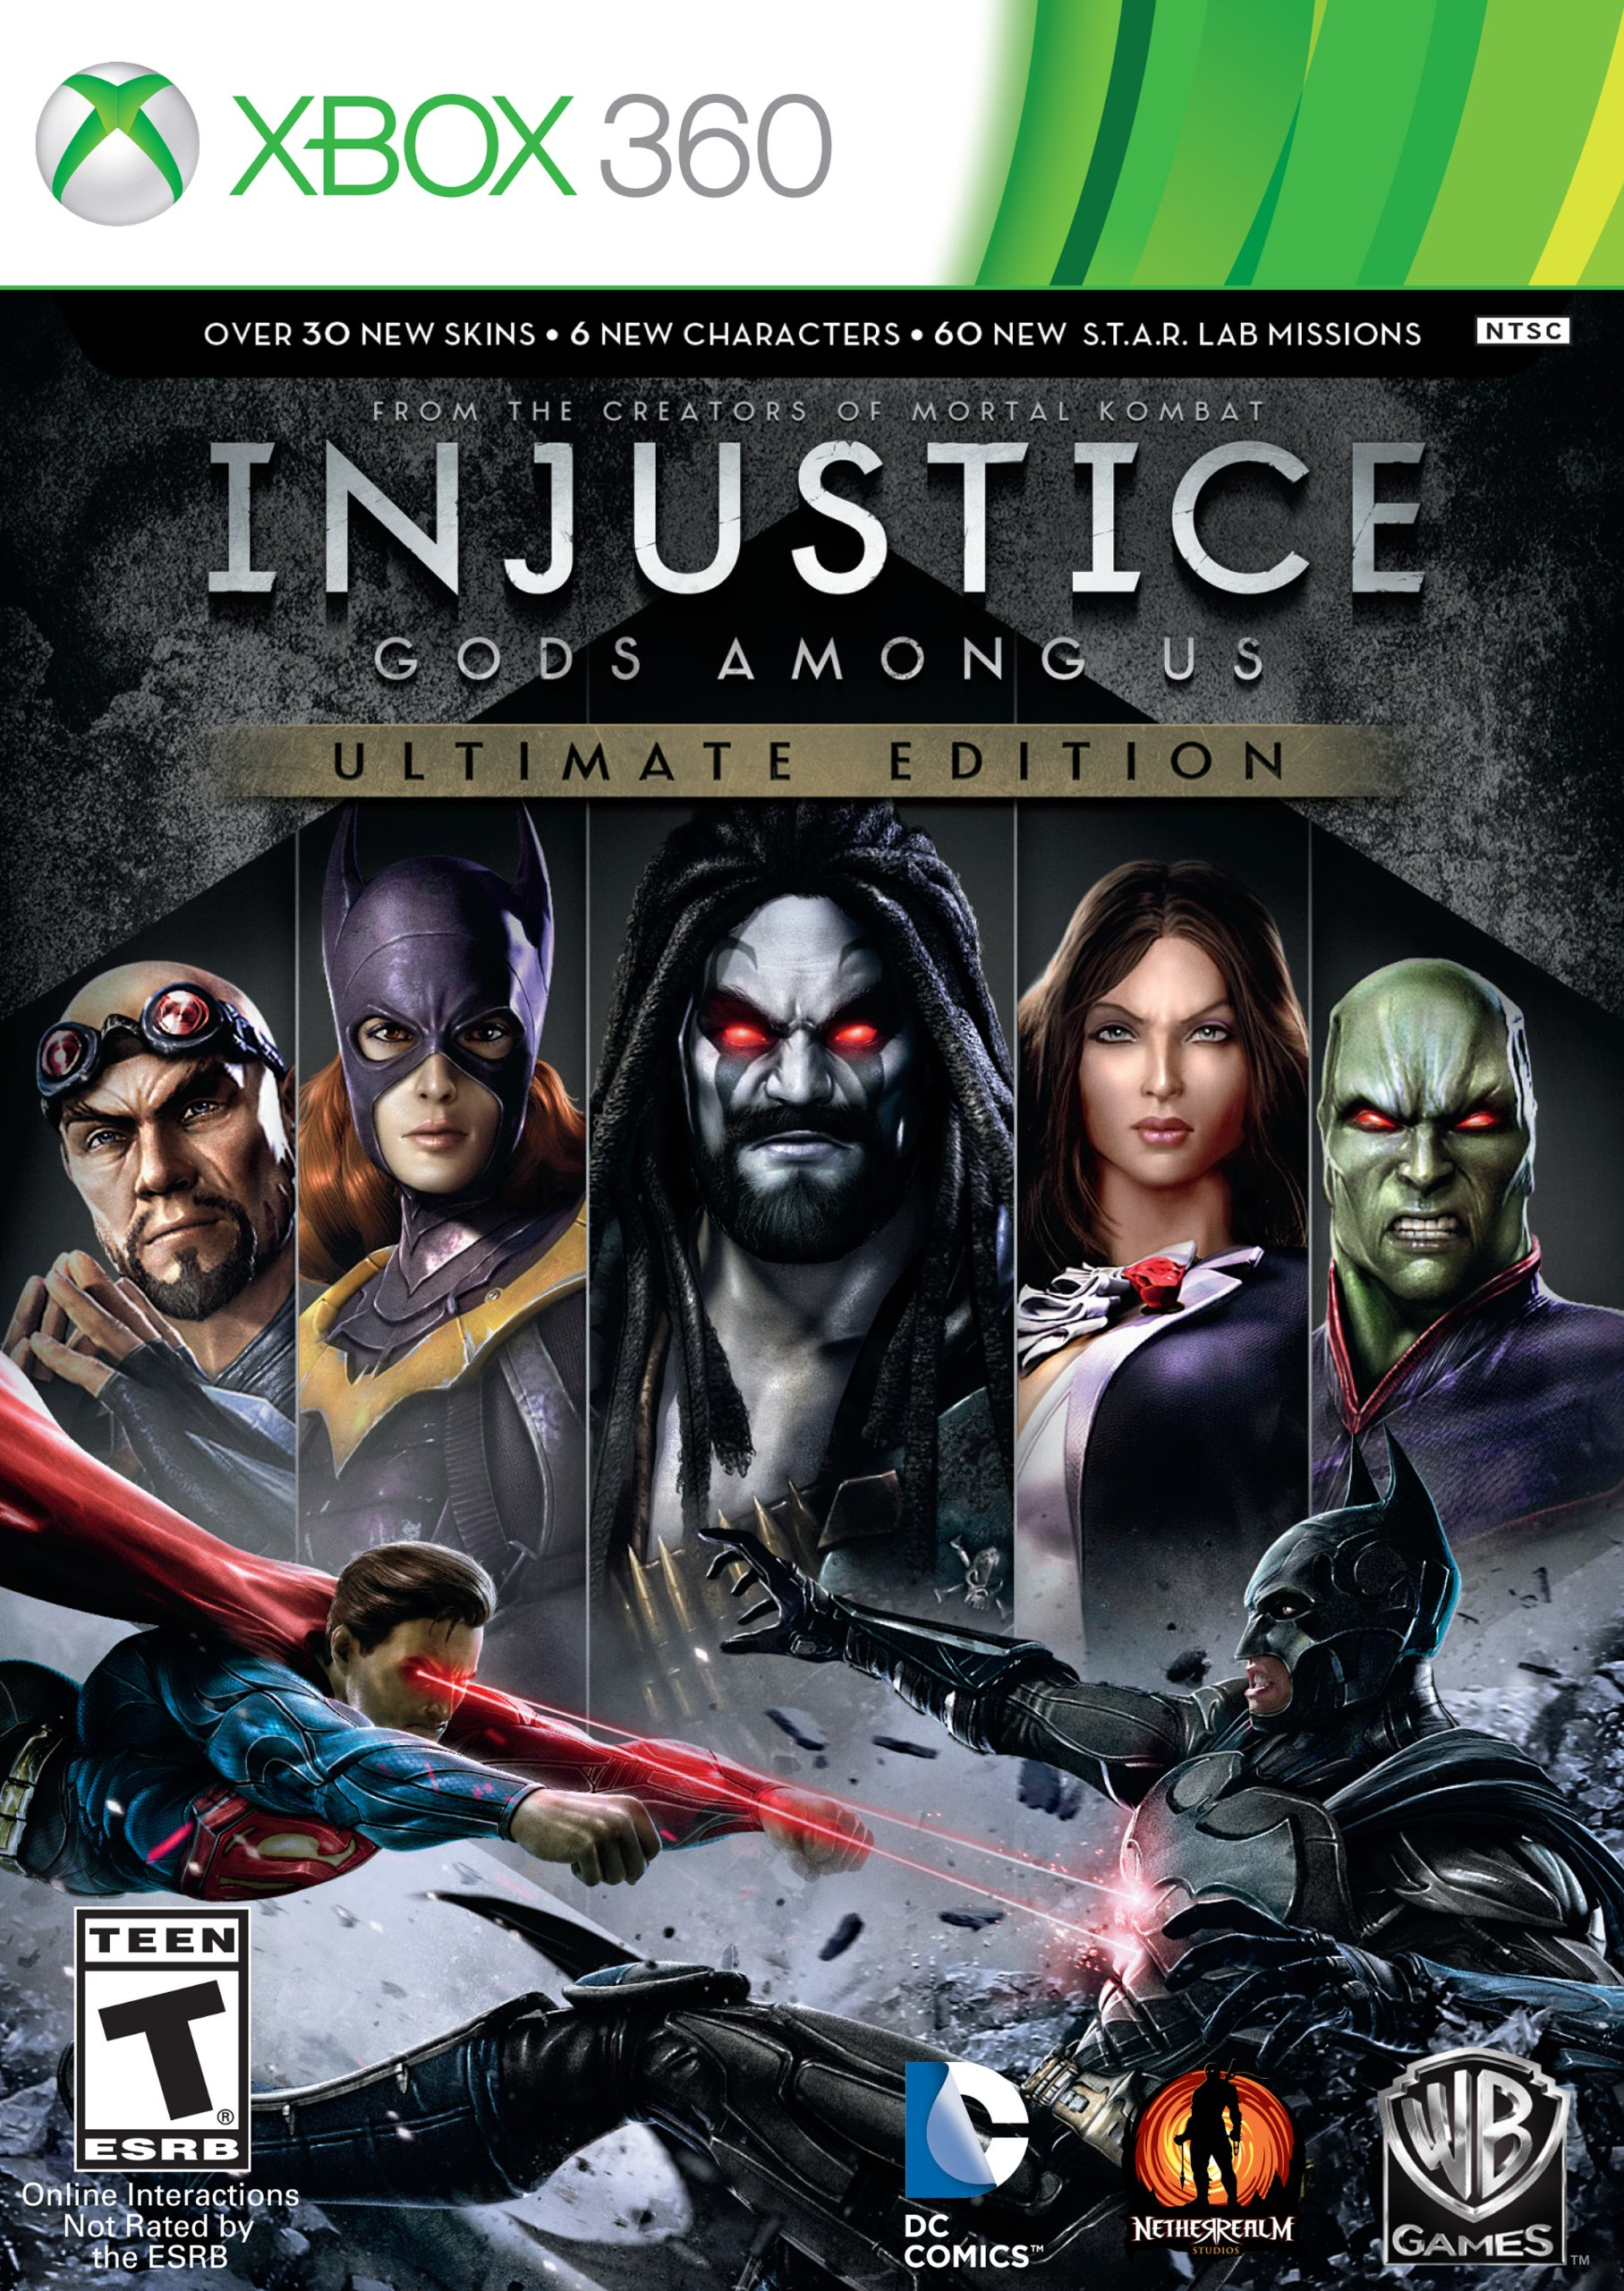 Injustice: Gods Among Us Ultimate Edition Release Dates